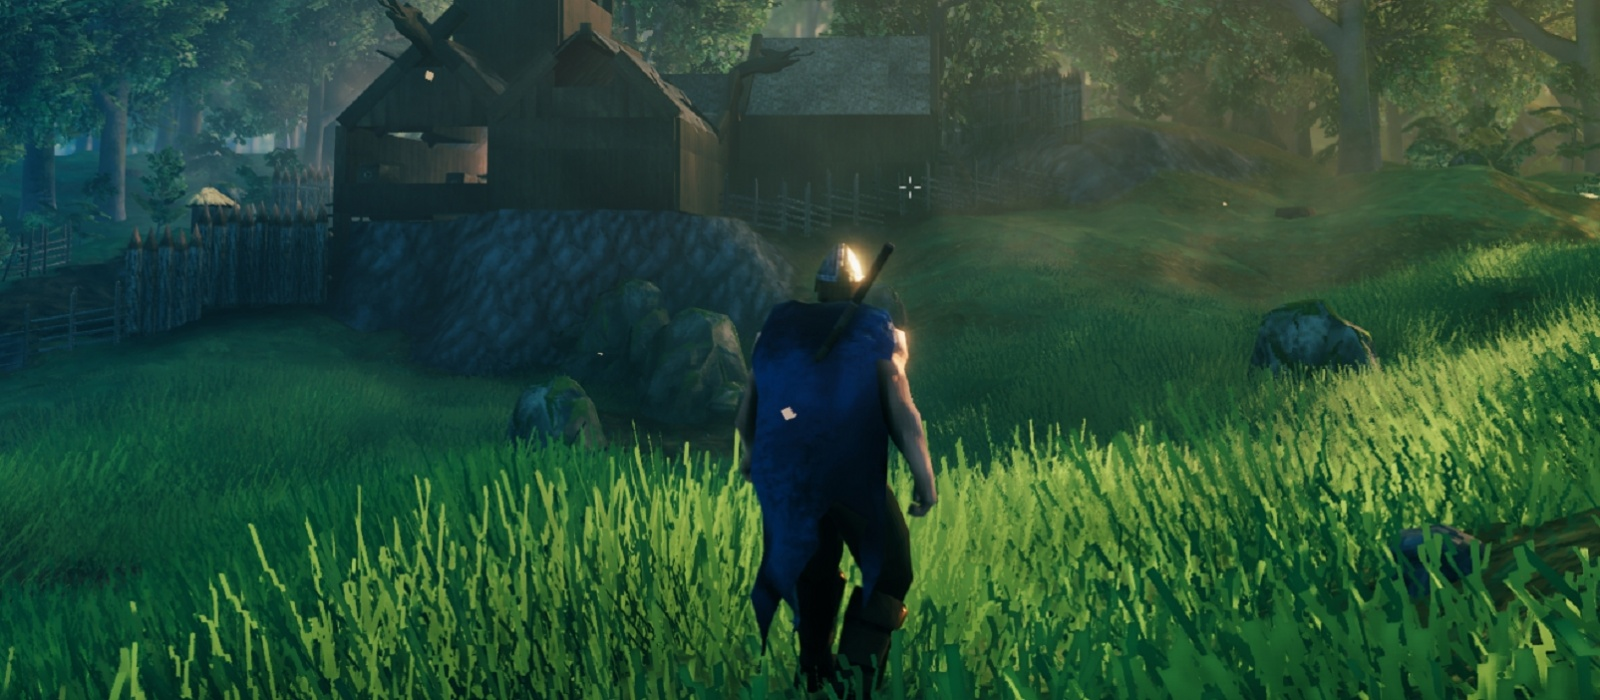 Console commands (cheats, codes) for players and admins in Valheim - immortality, teleportation, skills and much more